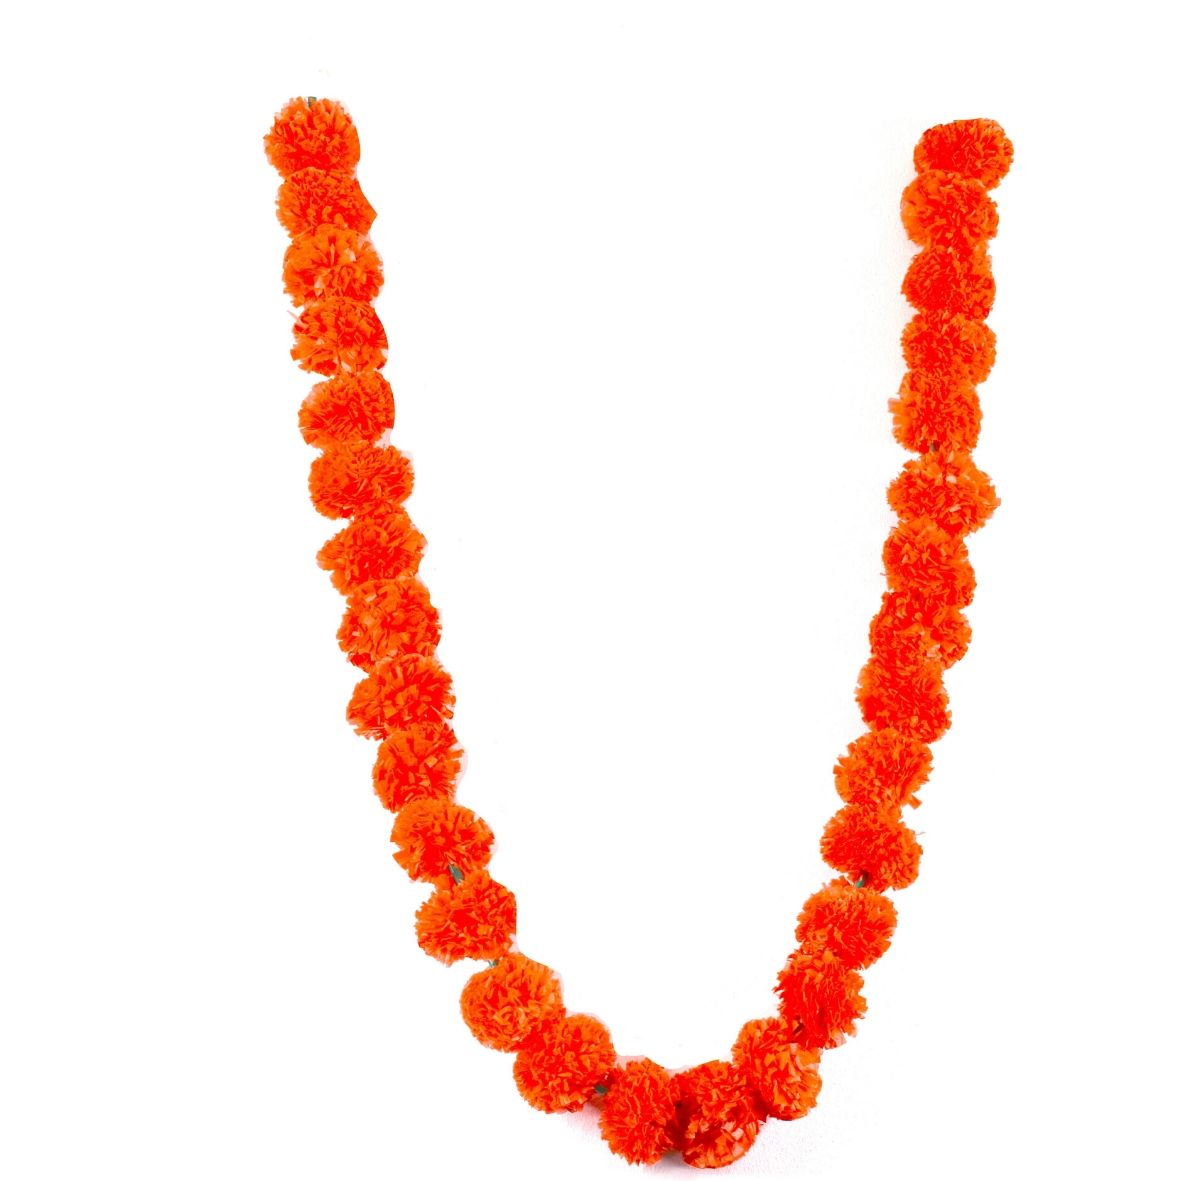 1 x String of Mango Marigold Artificial Plastic Hanging Garland 4ft Long